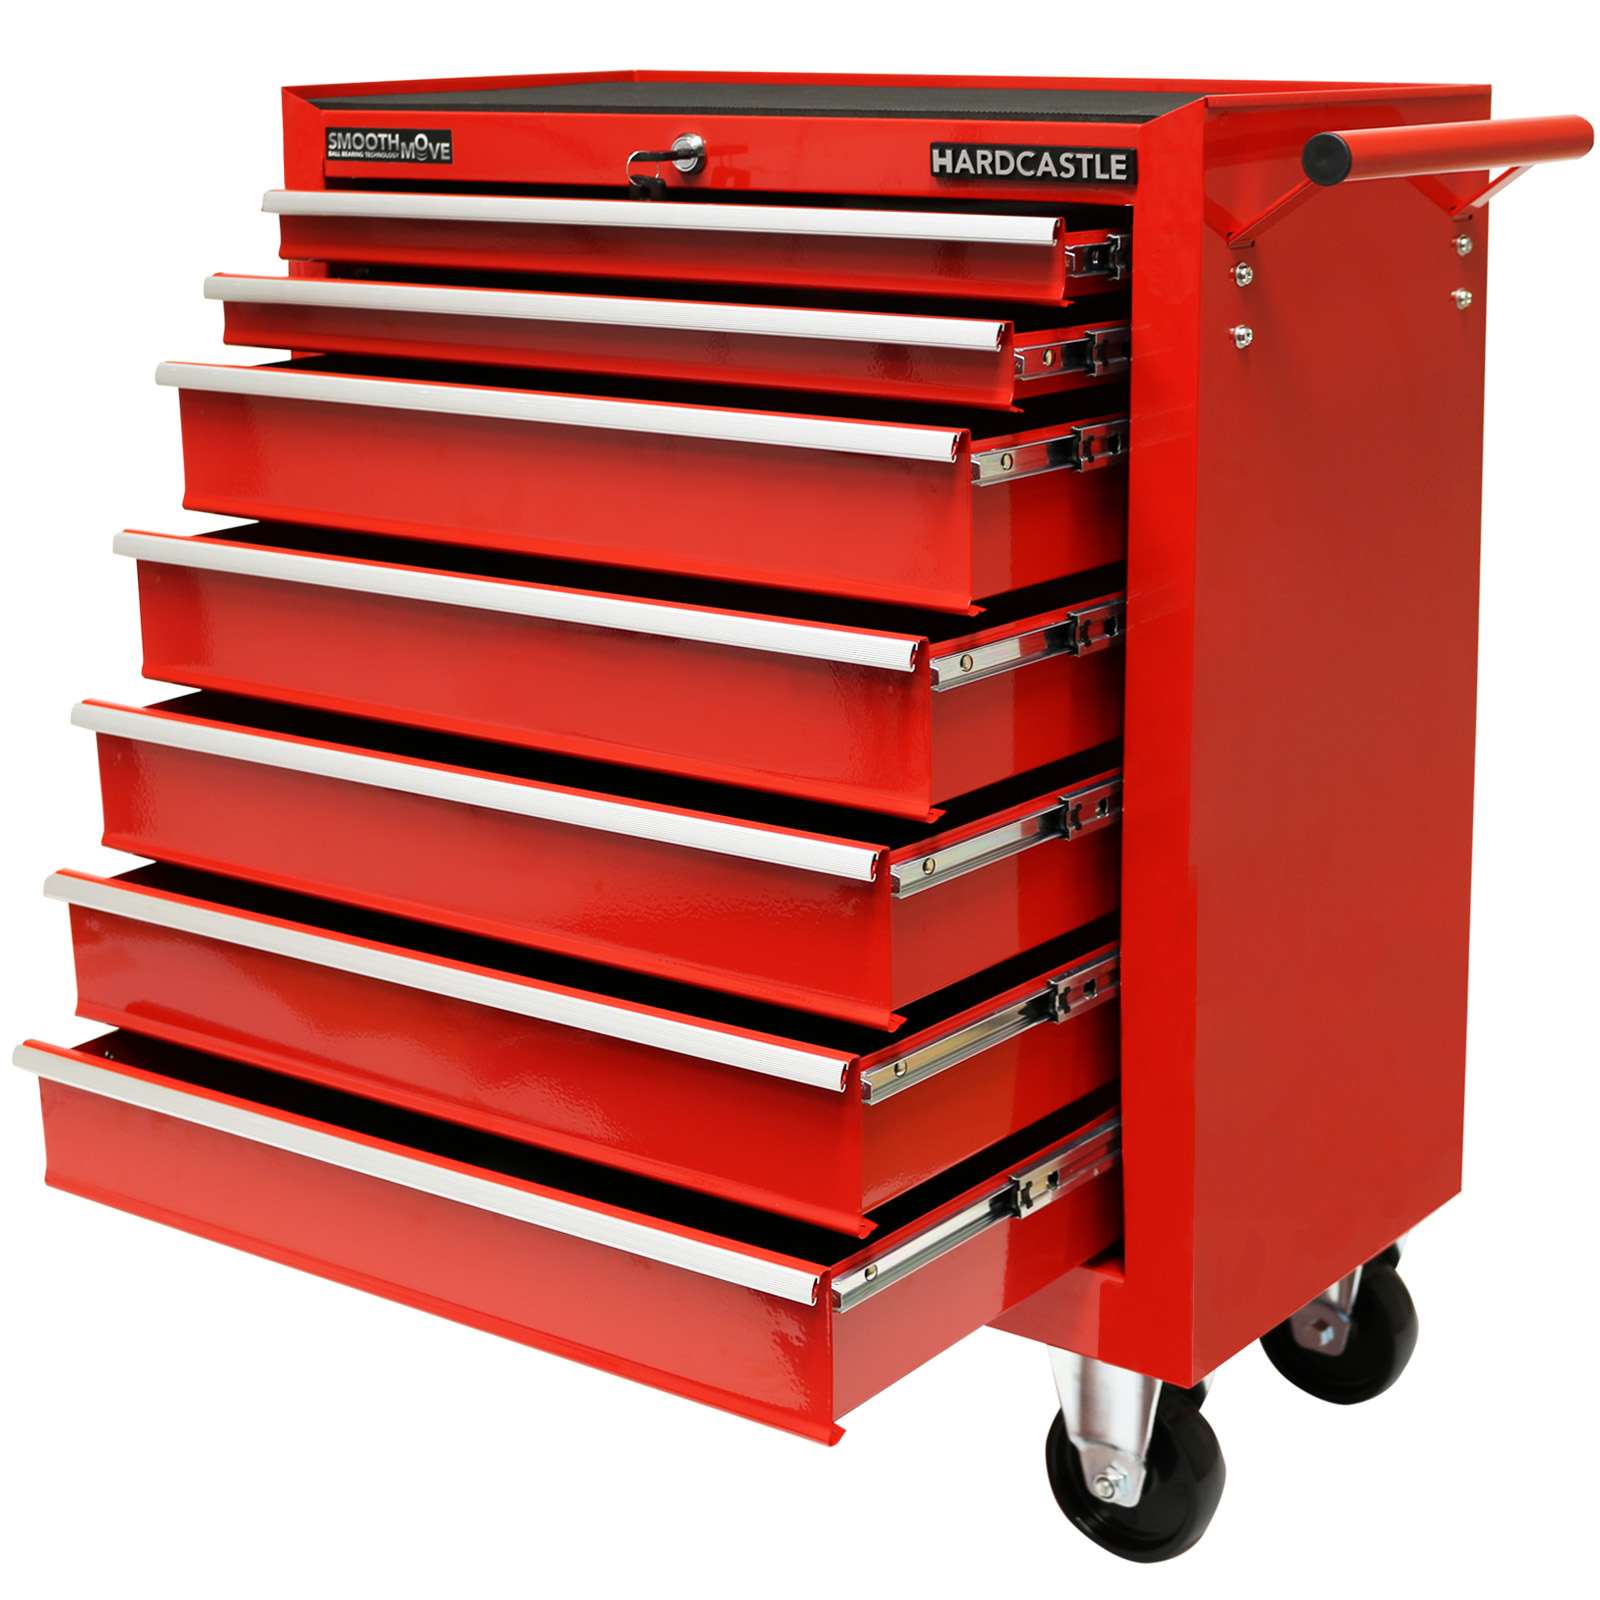 RED METAL 7 DRAWER LOCKABLE TOOL CHEST/BOX STORAGE ROLLER CABINET ...